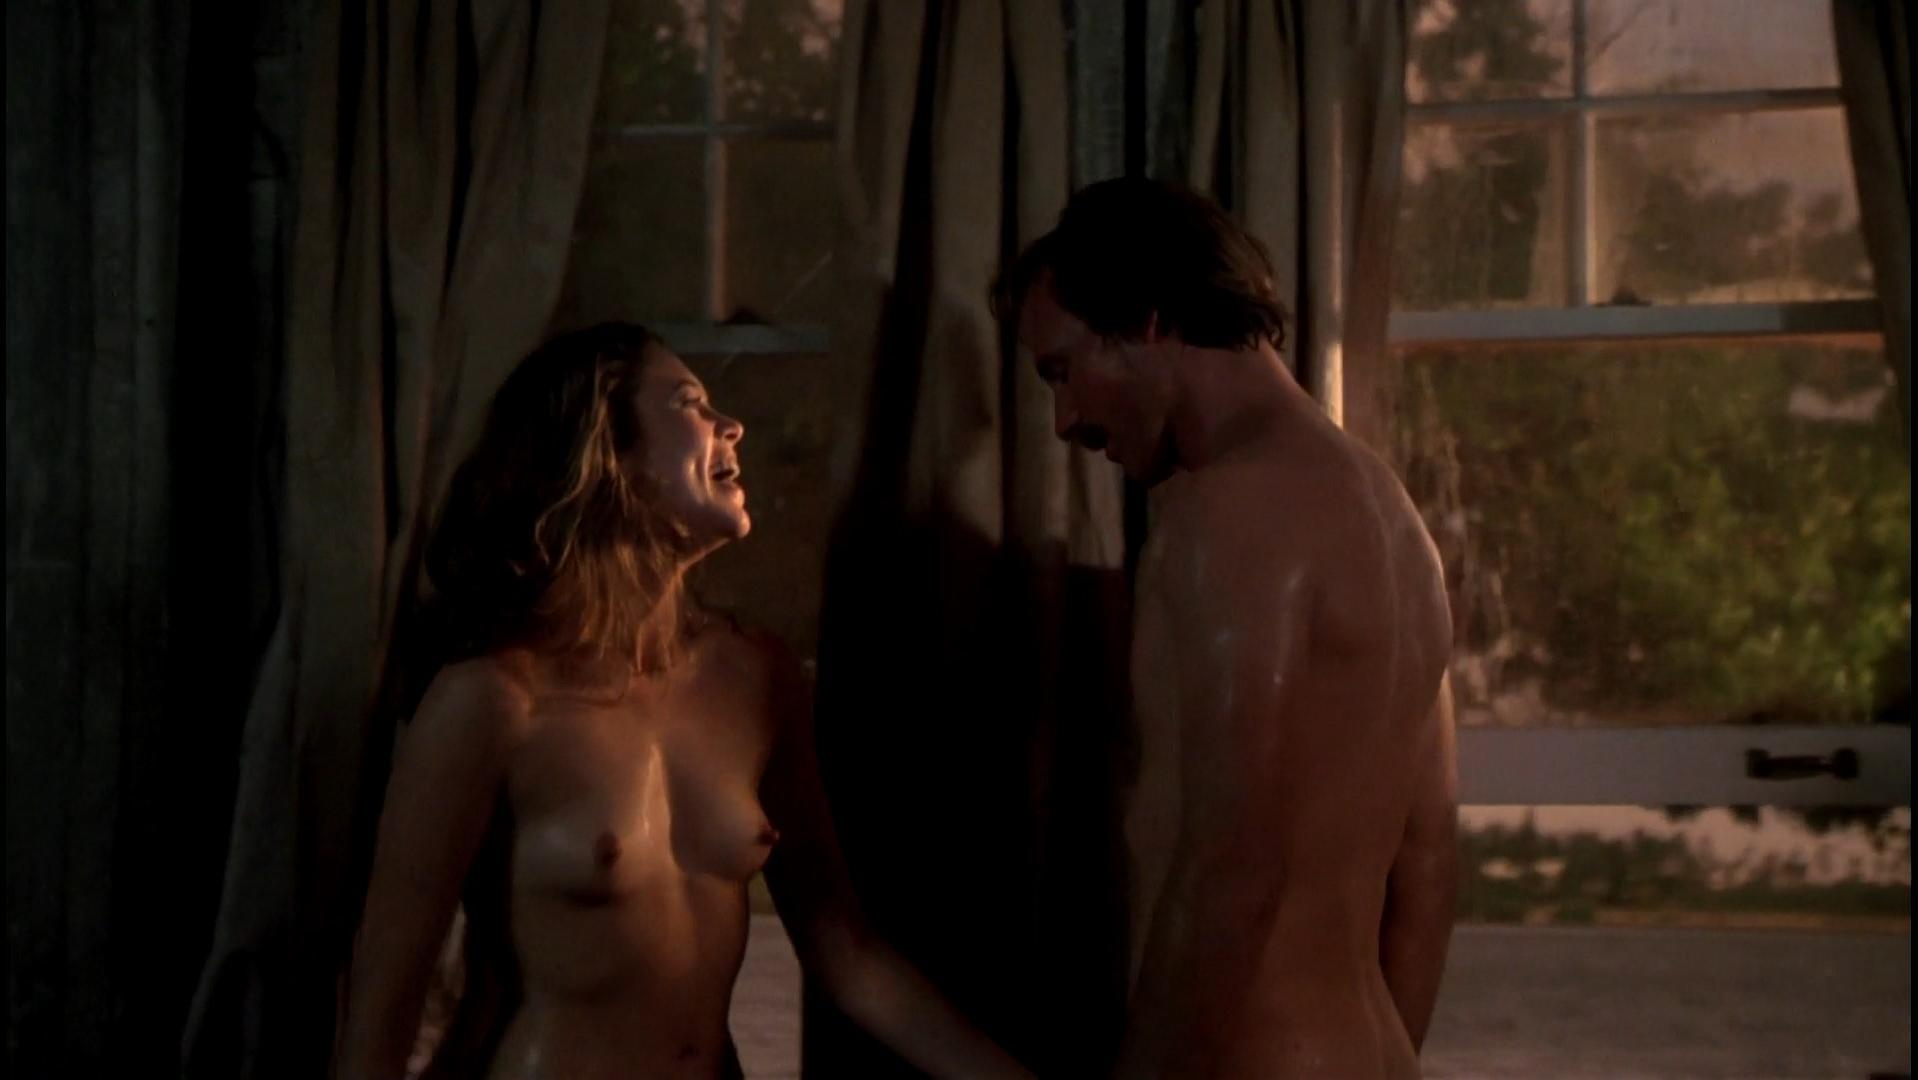 Kathleen Turner nude - Body Heat (1981)